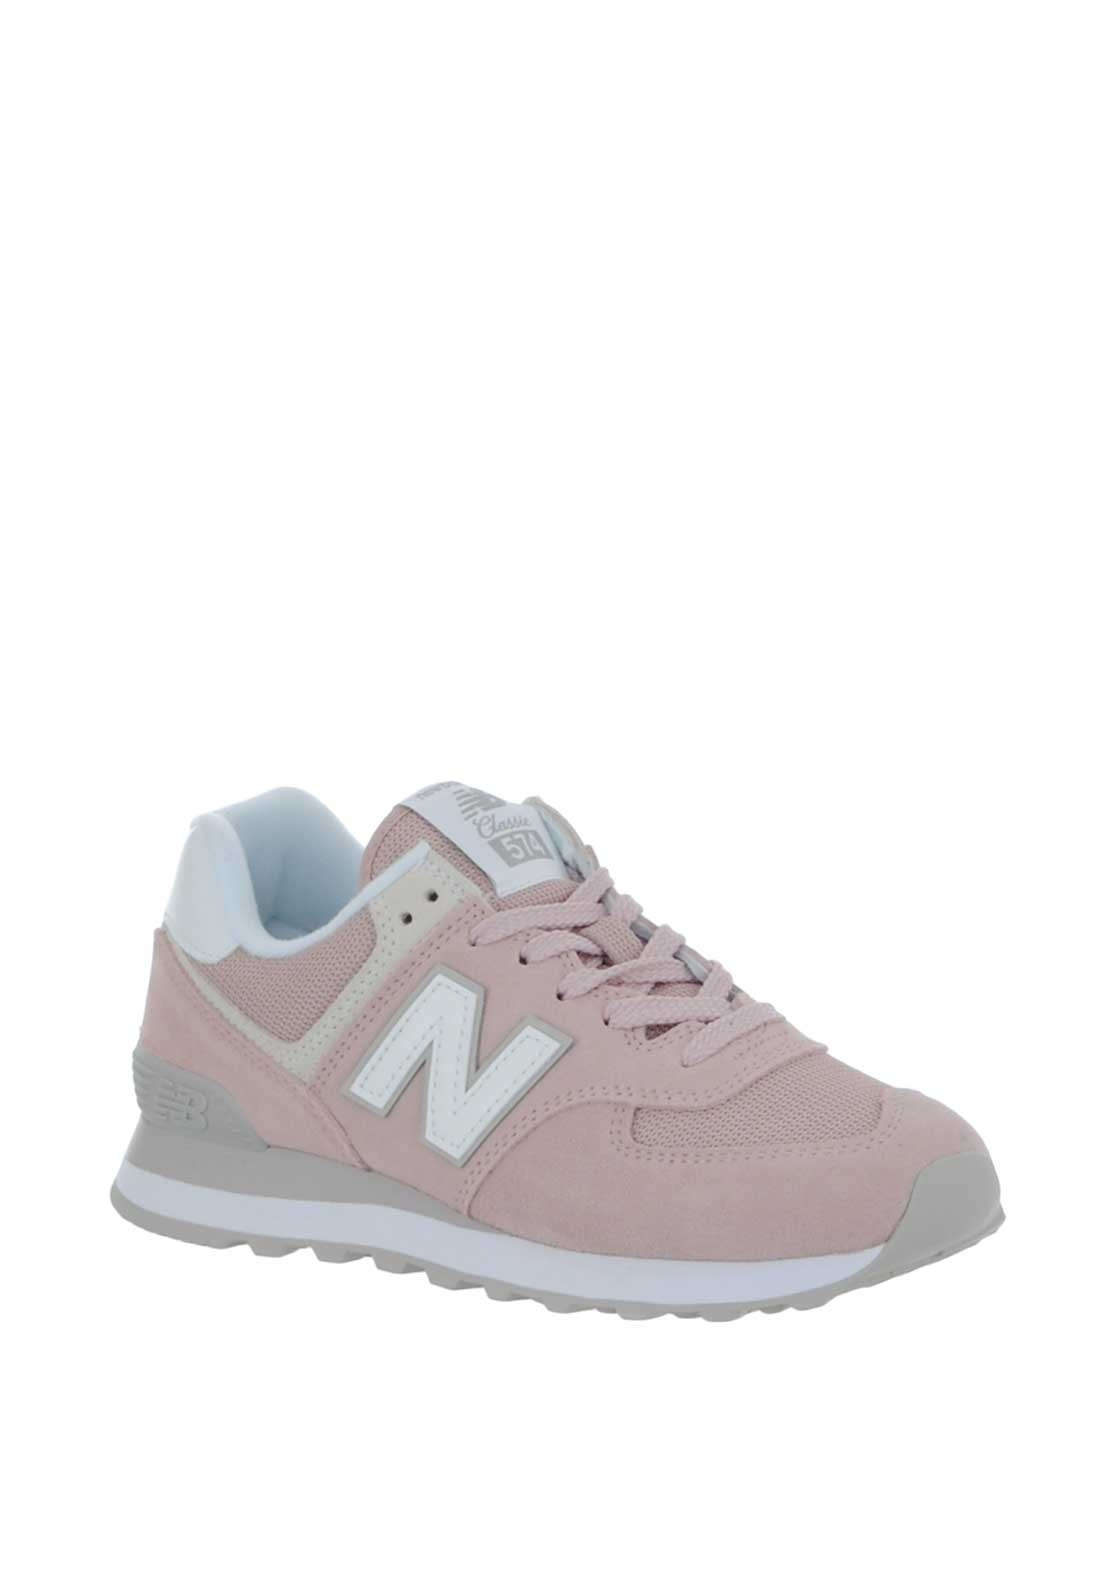 info for 431b8 380a1 New Balance Womens 574 Suede Trainers, Pink